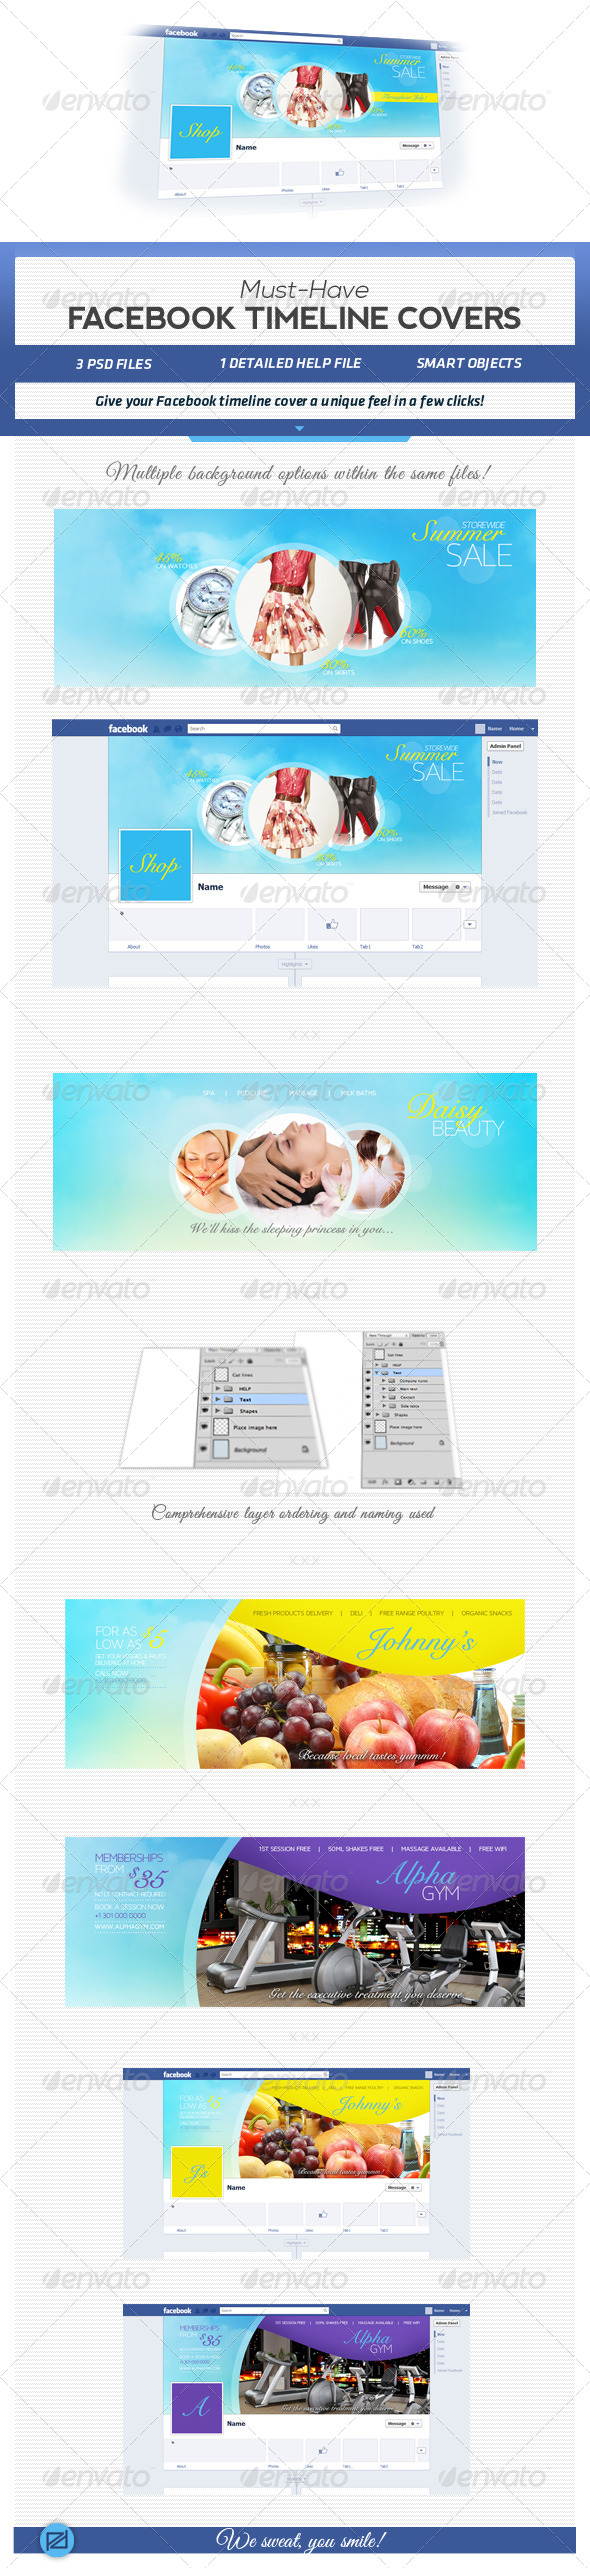 GraphicRiver Must Have Facebook Timeline Covers 5006056